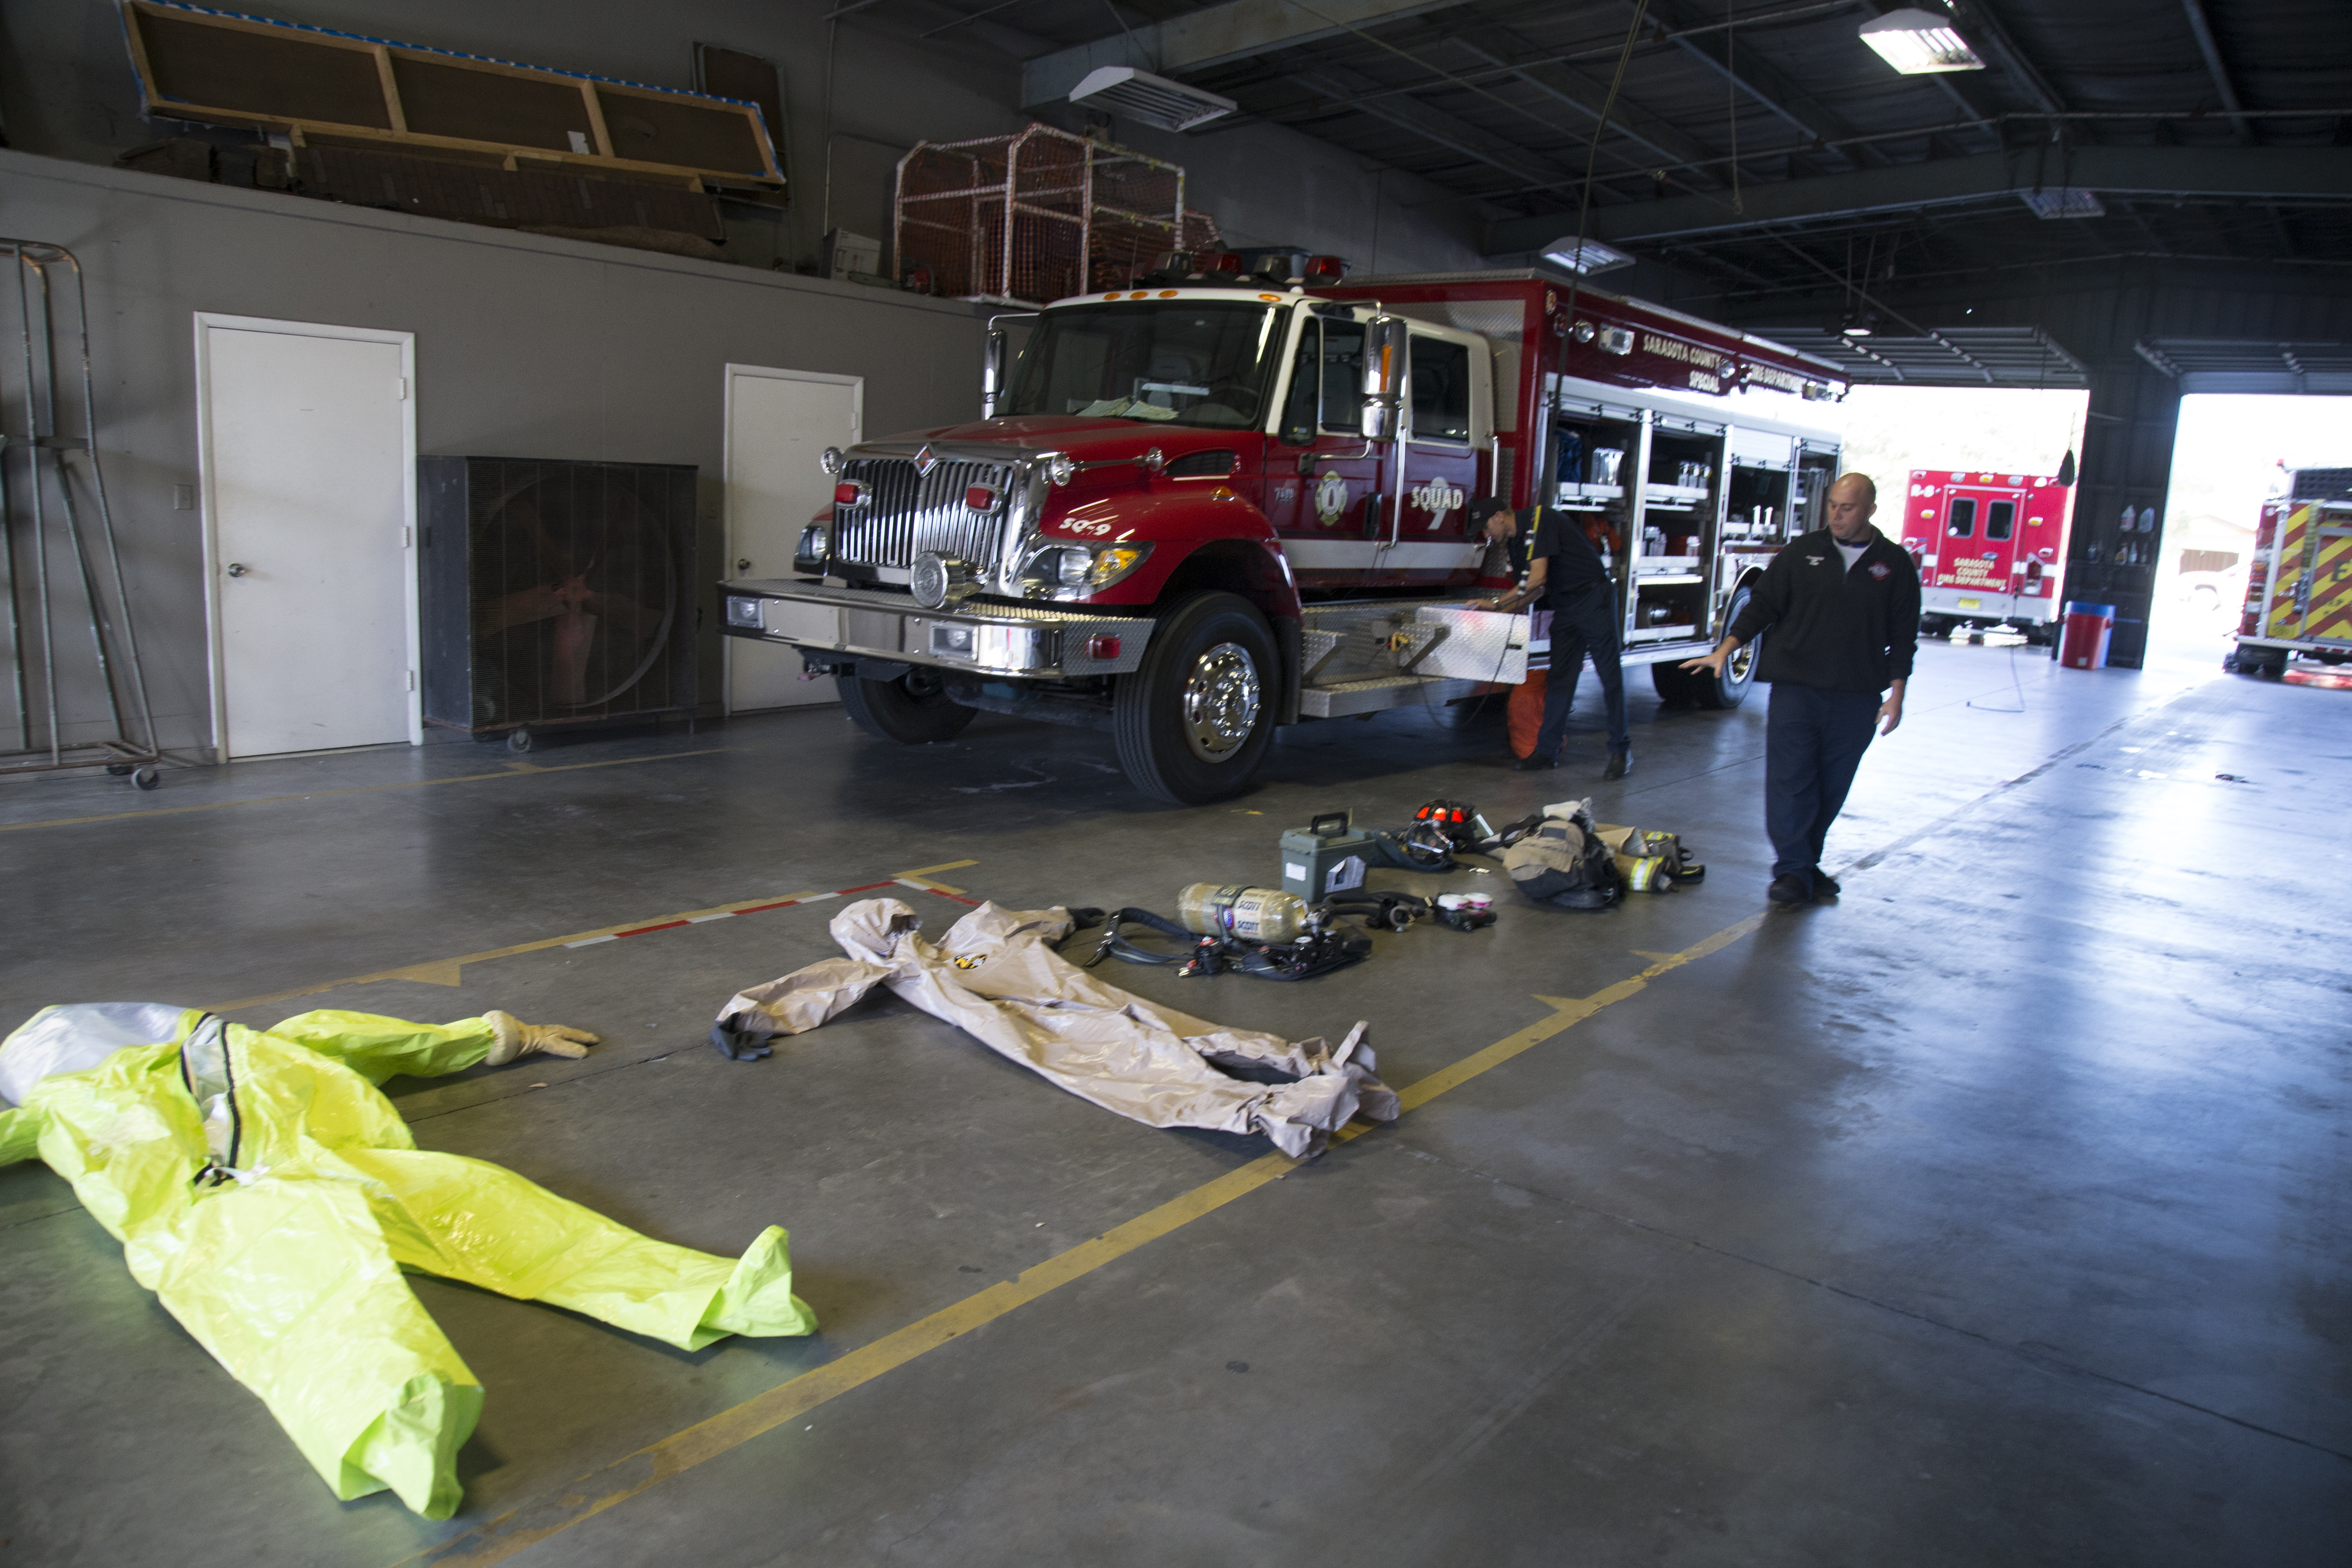 Crime Scene Technology Students Visit the Sarasota Fire Department